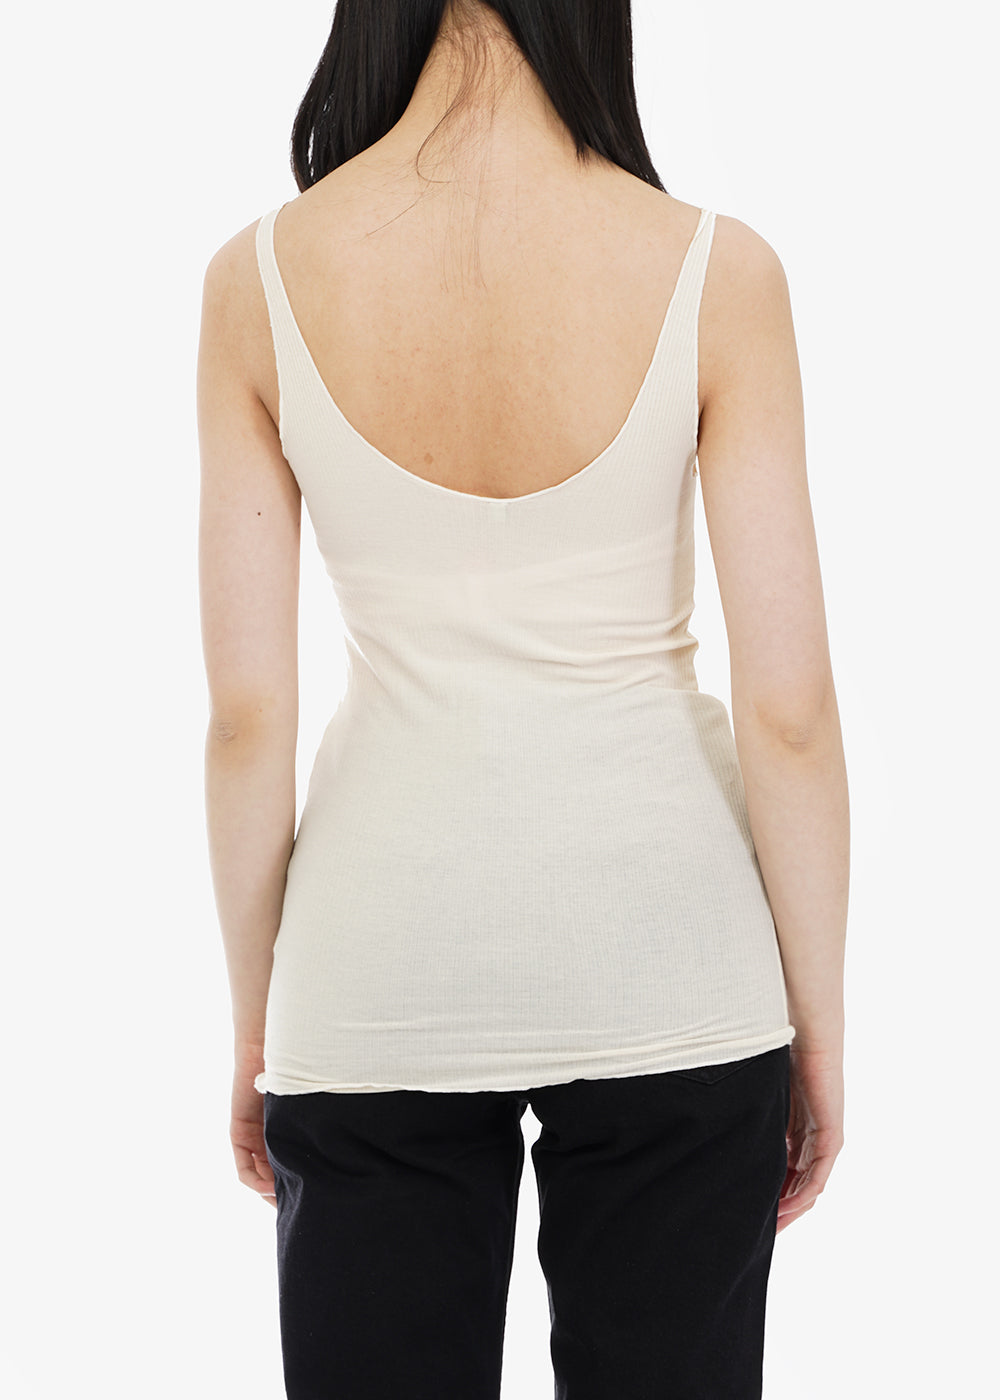 Baserange Off White Tacca Camisole — Shop sustainable fashion and slow fashion at New Classics Studios